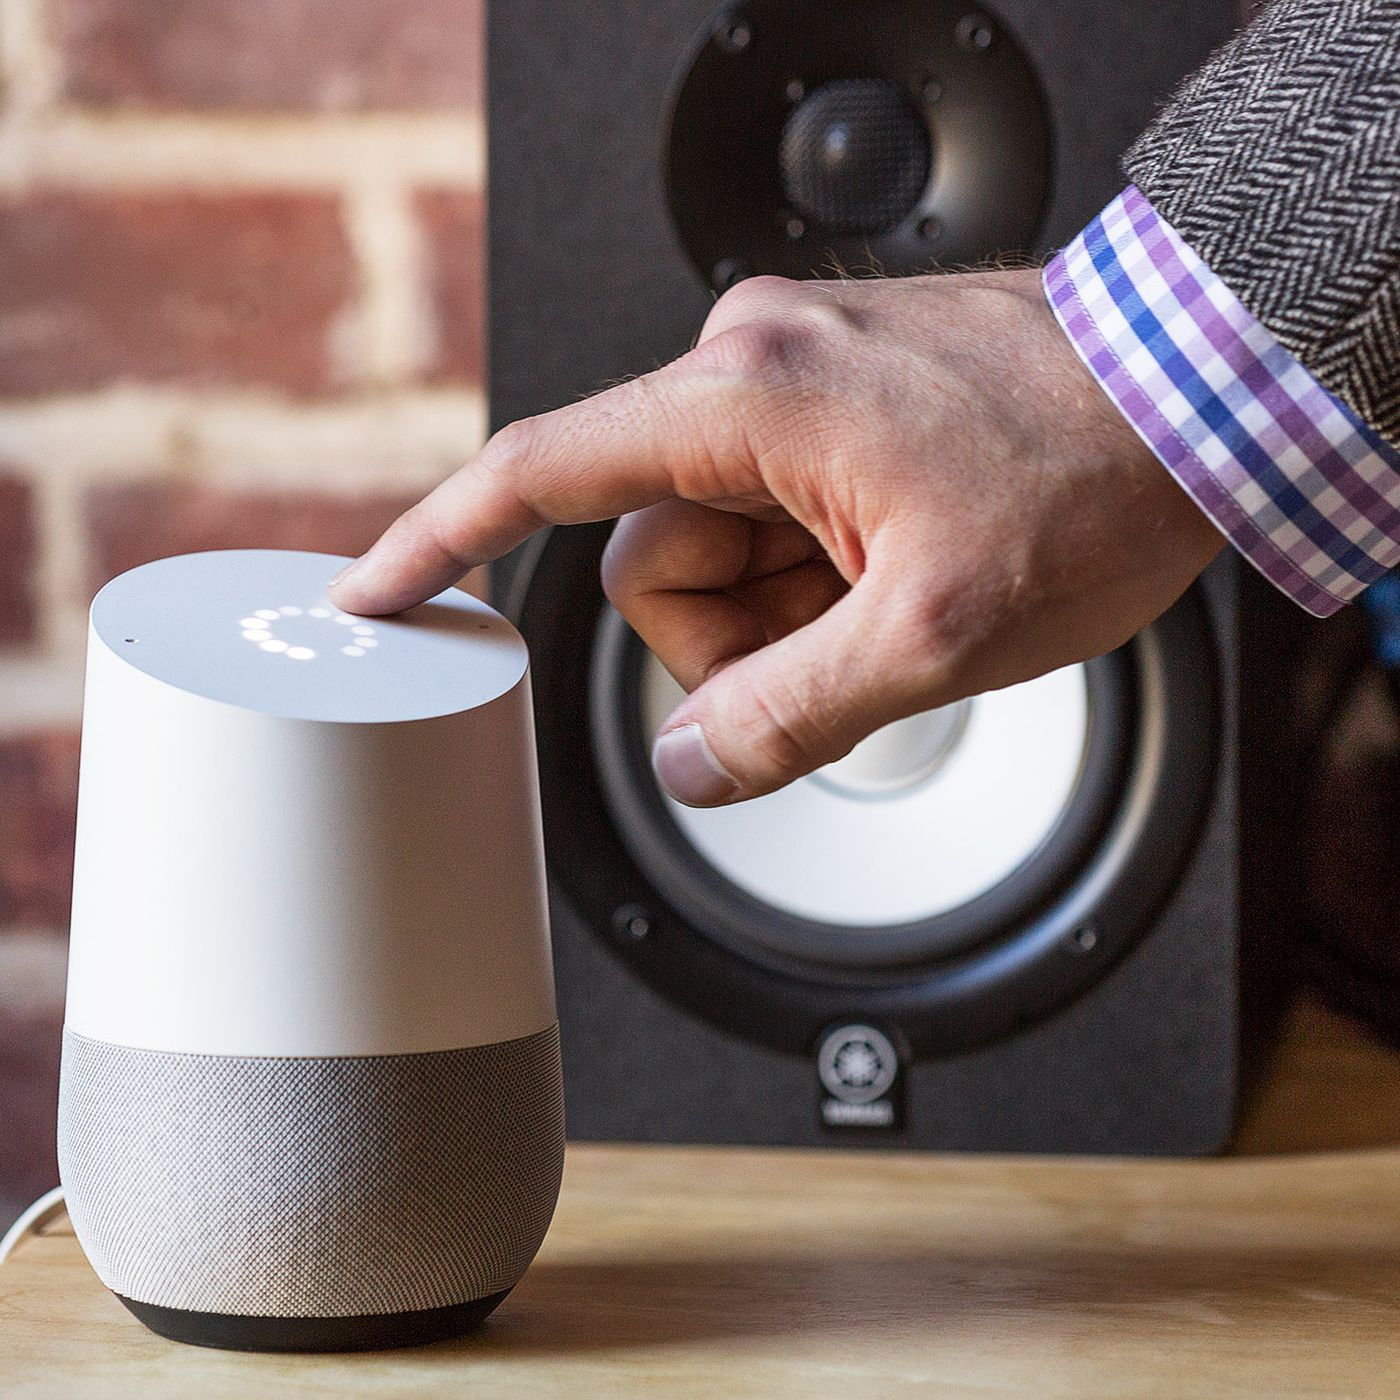 Google Home now works with Belkin WeMo and Honeywell smart